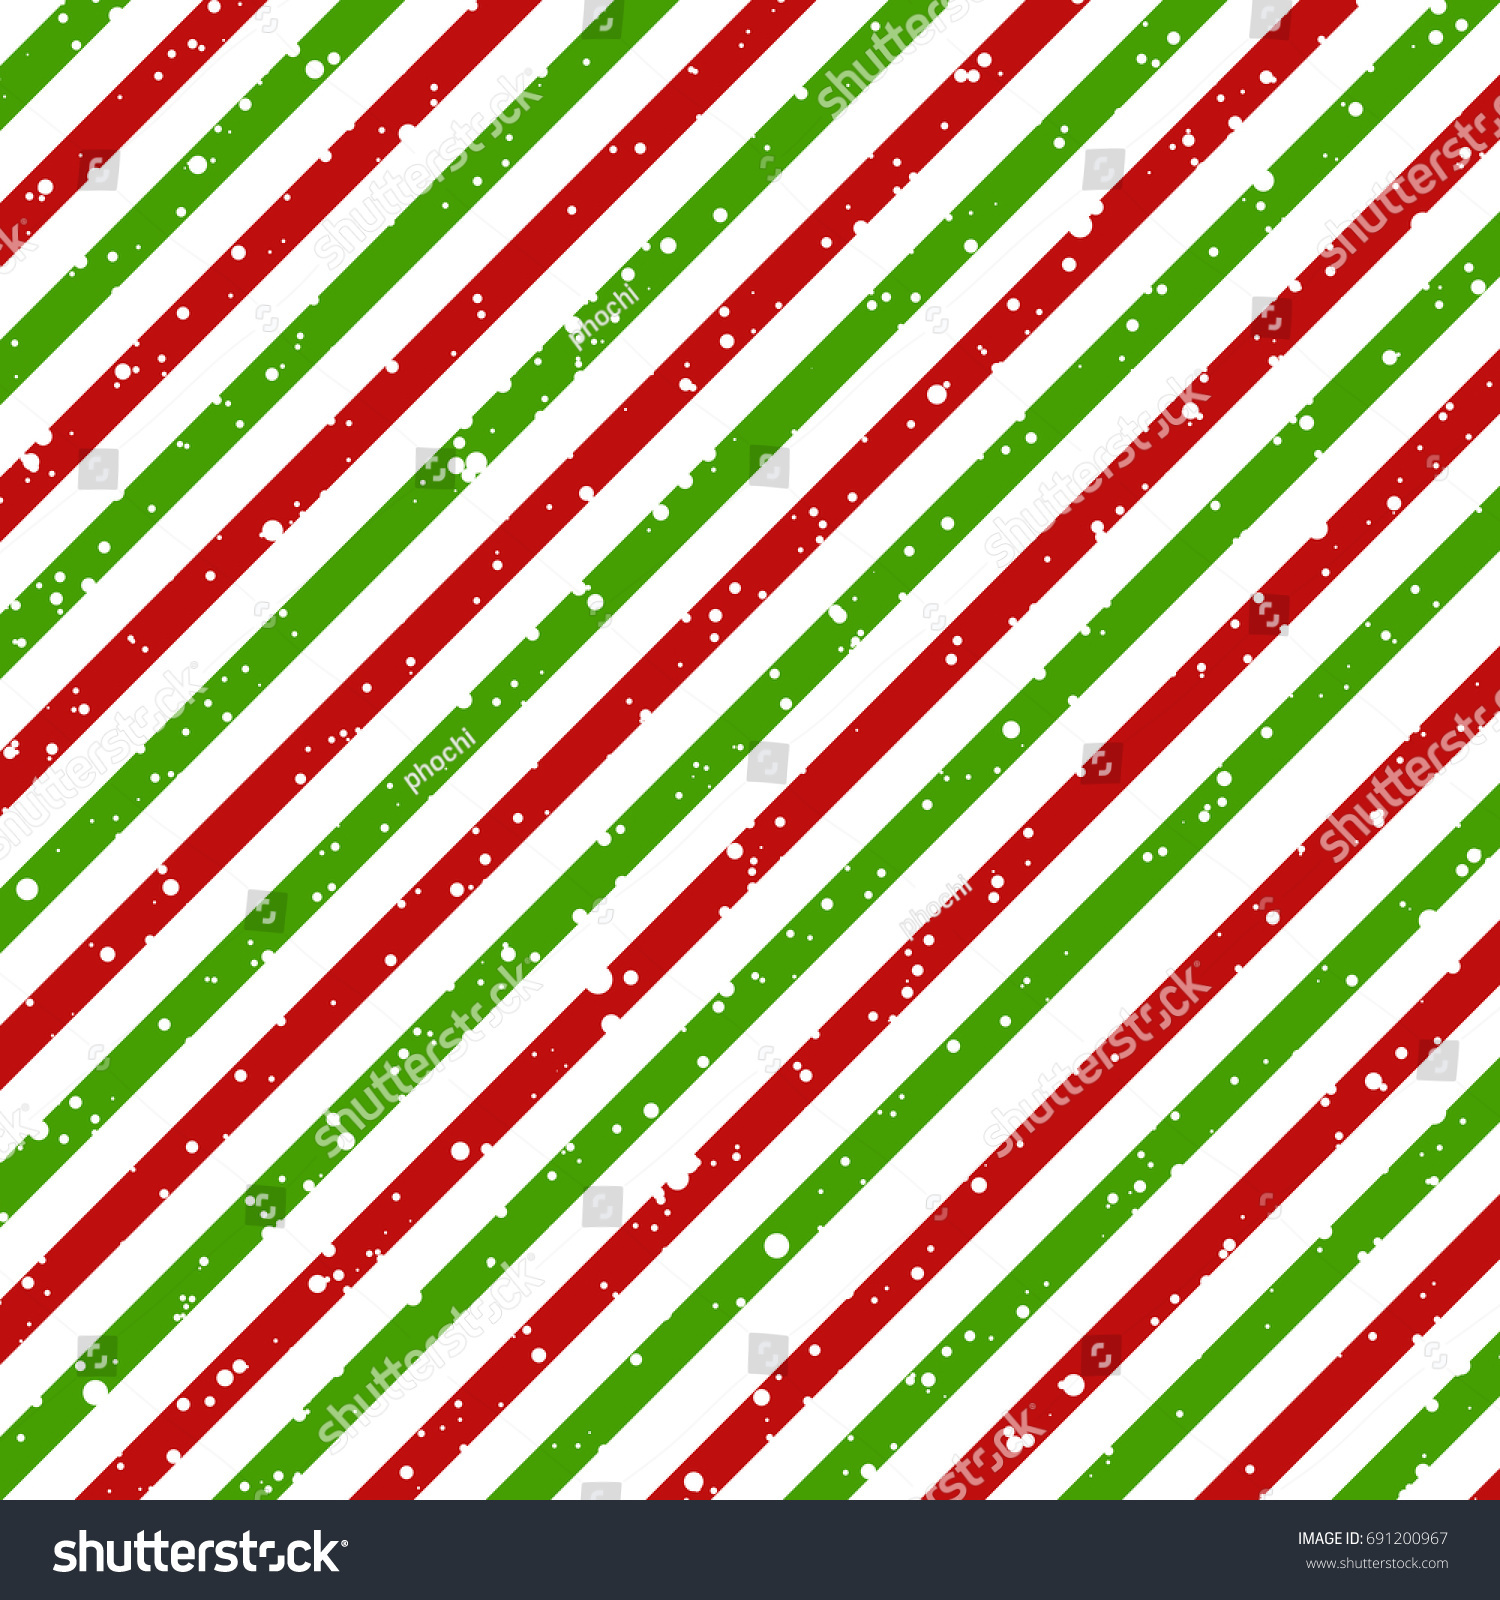 red and green stripe background wwwimagenesmycom